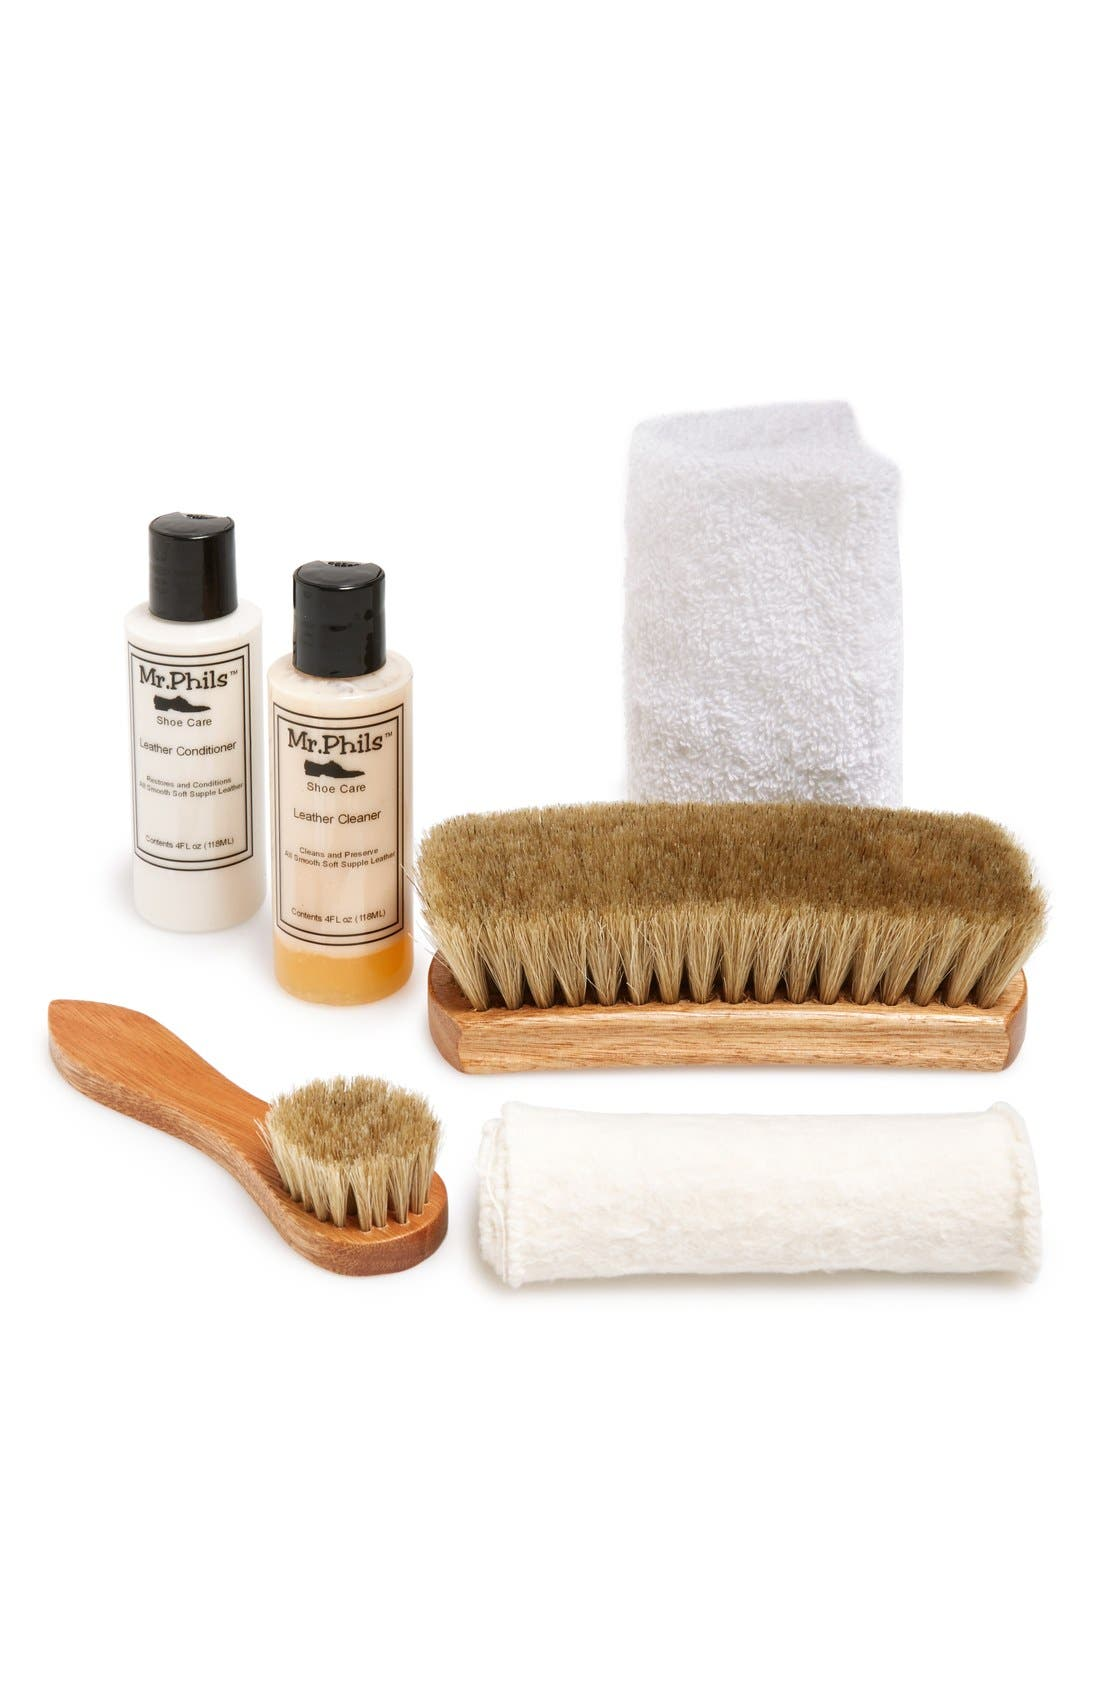 Main Image - Mr.Phils Shoe Cleaning Kit